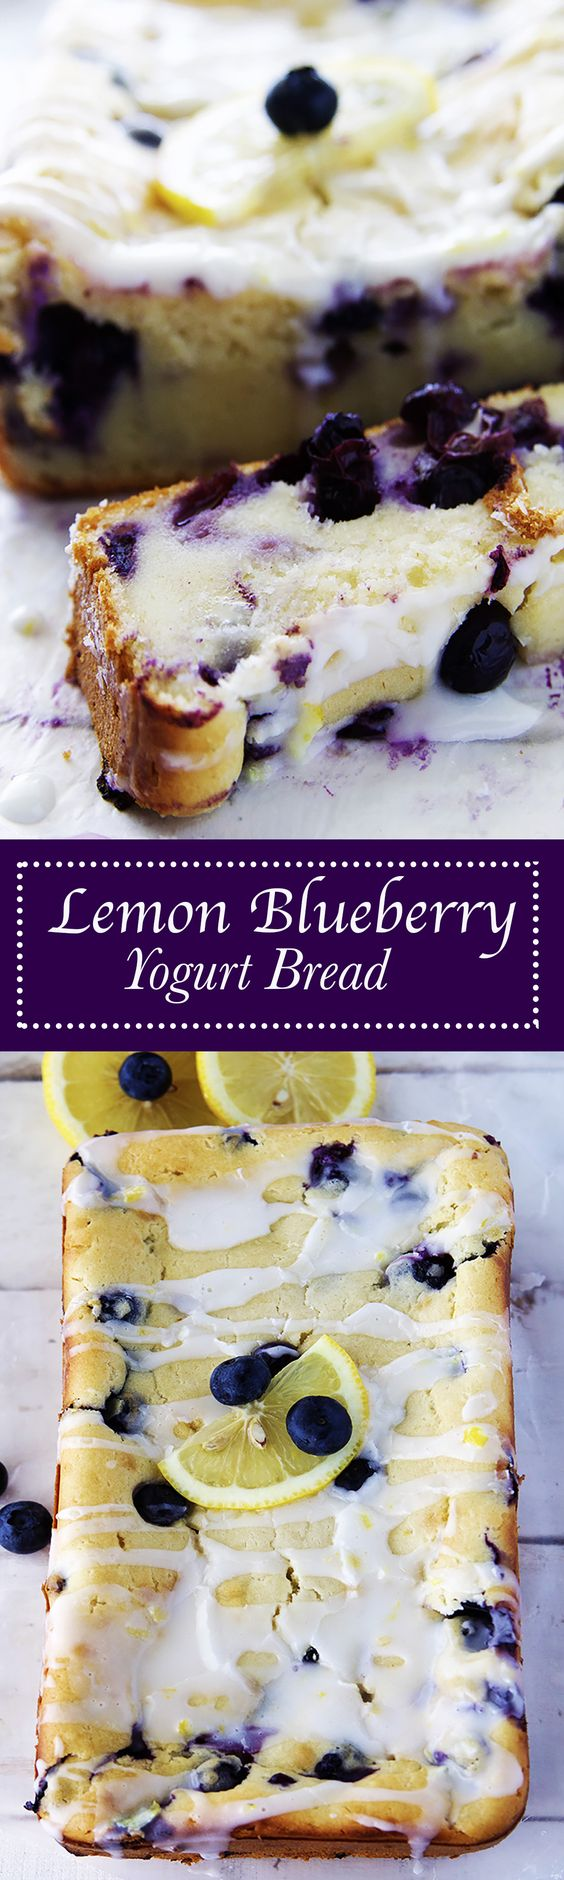 Lemon Blueberry Yogurt Bread Recipe via Fitness Food Diva - Bursting with blueberries, flavored just perfectly with lemon zest, and topped off with a lite lemon glaze, this is amazing for Summer. #dessertbreads #neighborgifts #homemadegifts #foodgifts #breadrecipes #flavoredbreads #sweetbreads #holidaybread #bread #homemadebread #simplebreadrecipes #simplebread #simplerecipes